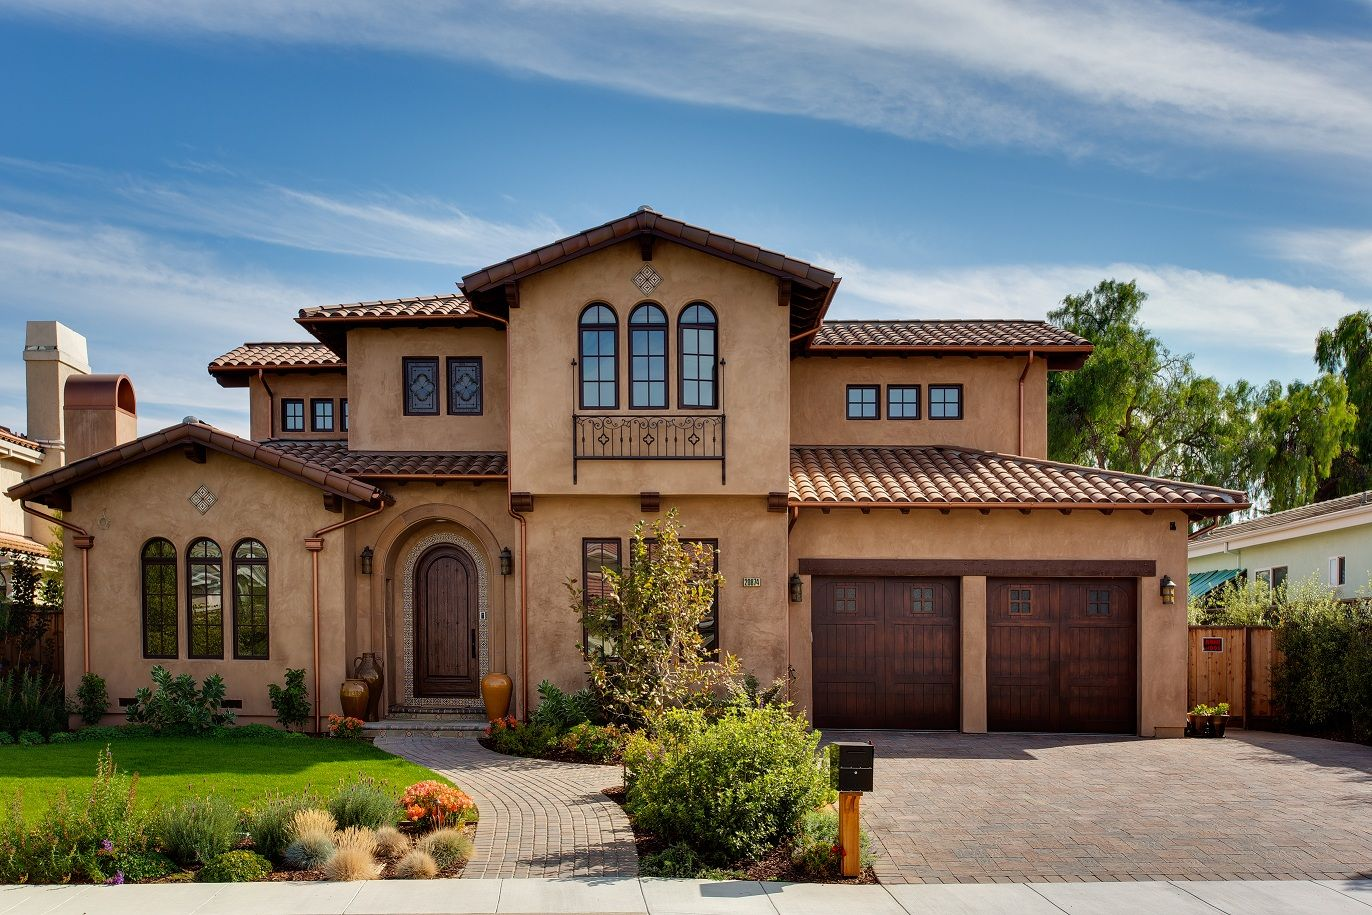 exterior of homes designs exterior designs spanish style homes rh pinterest com